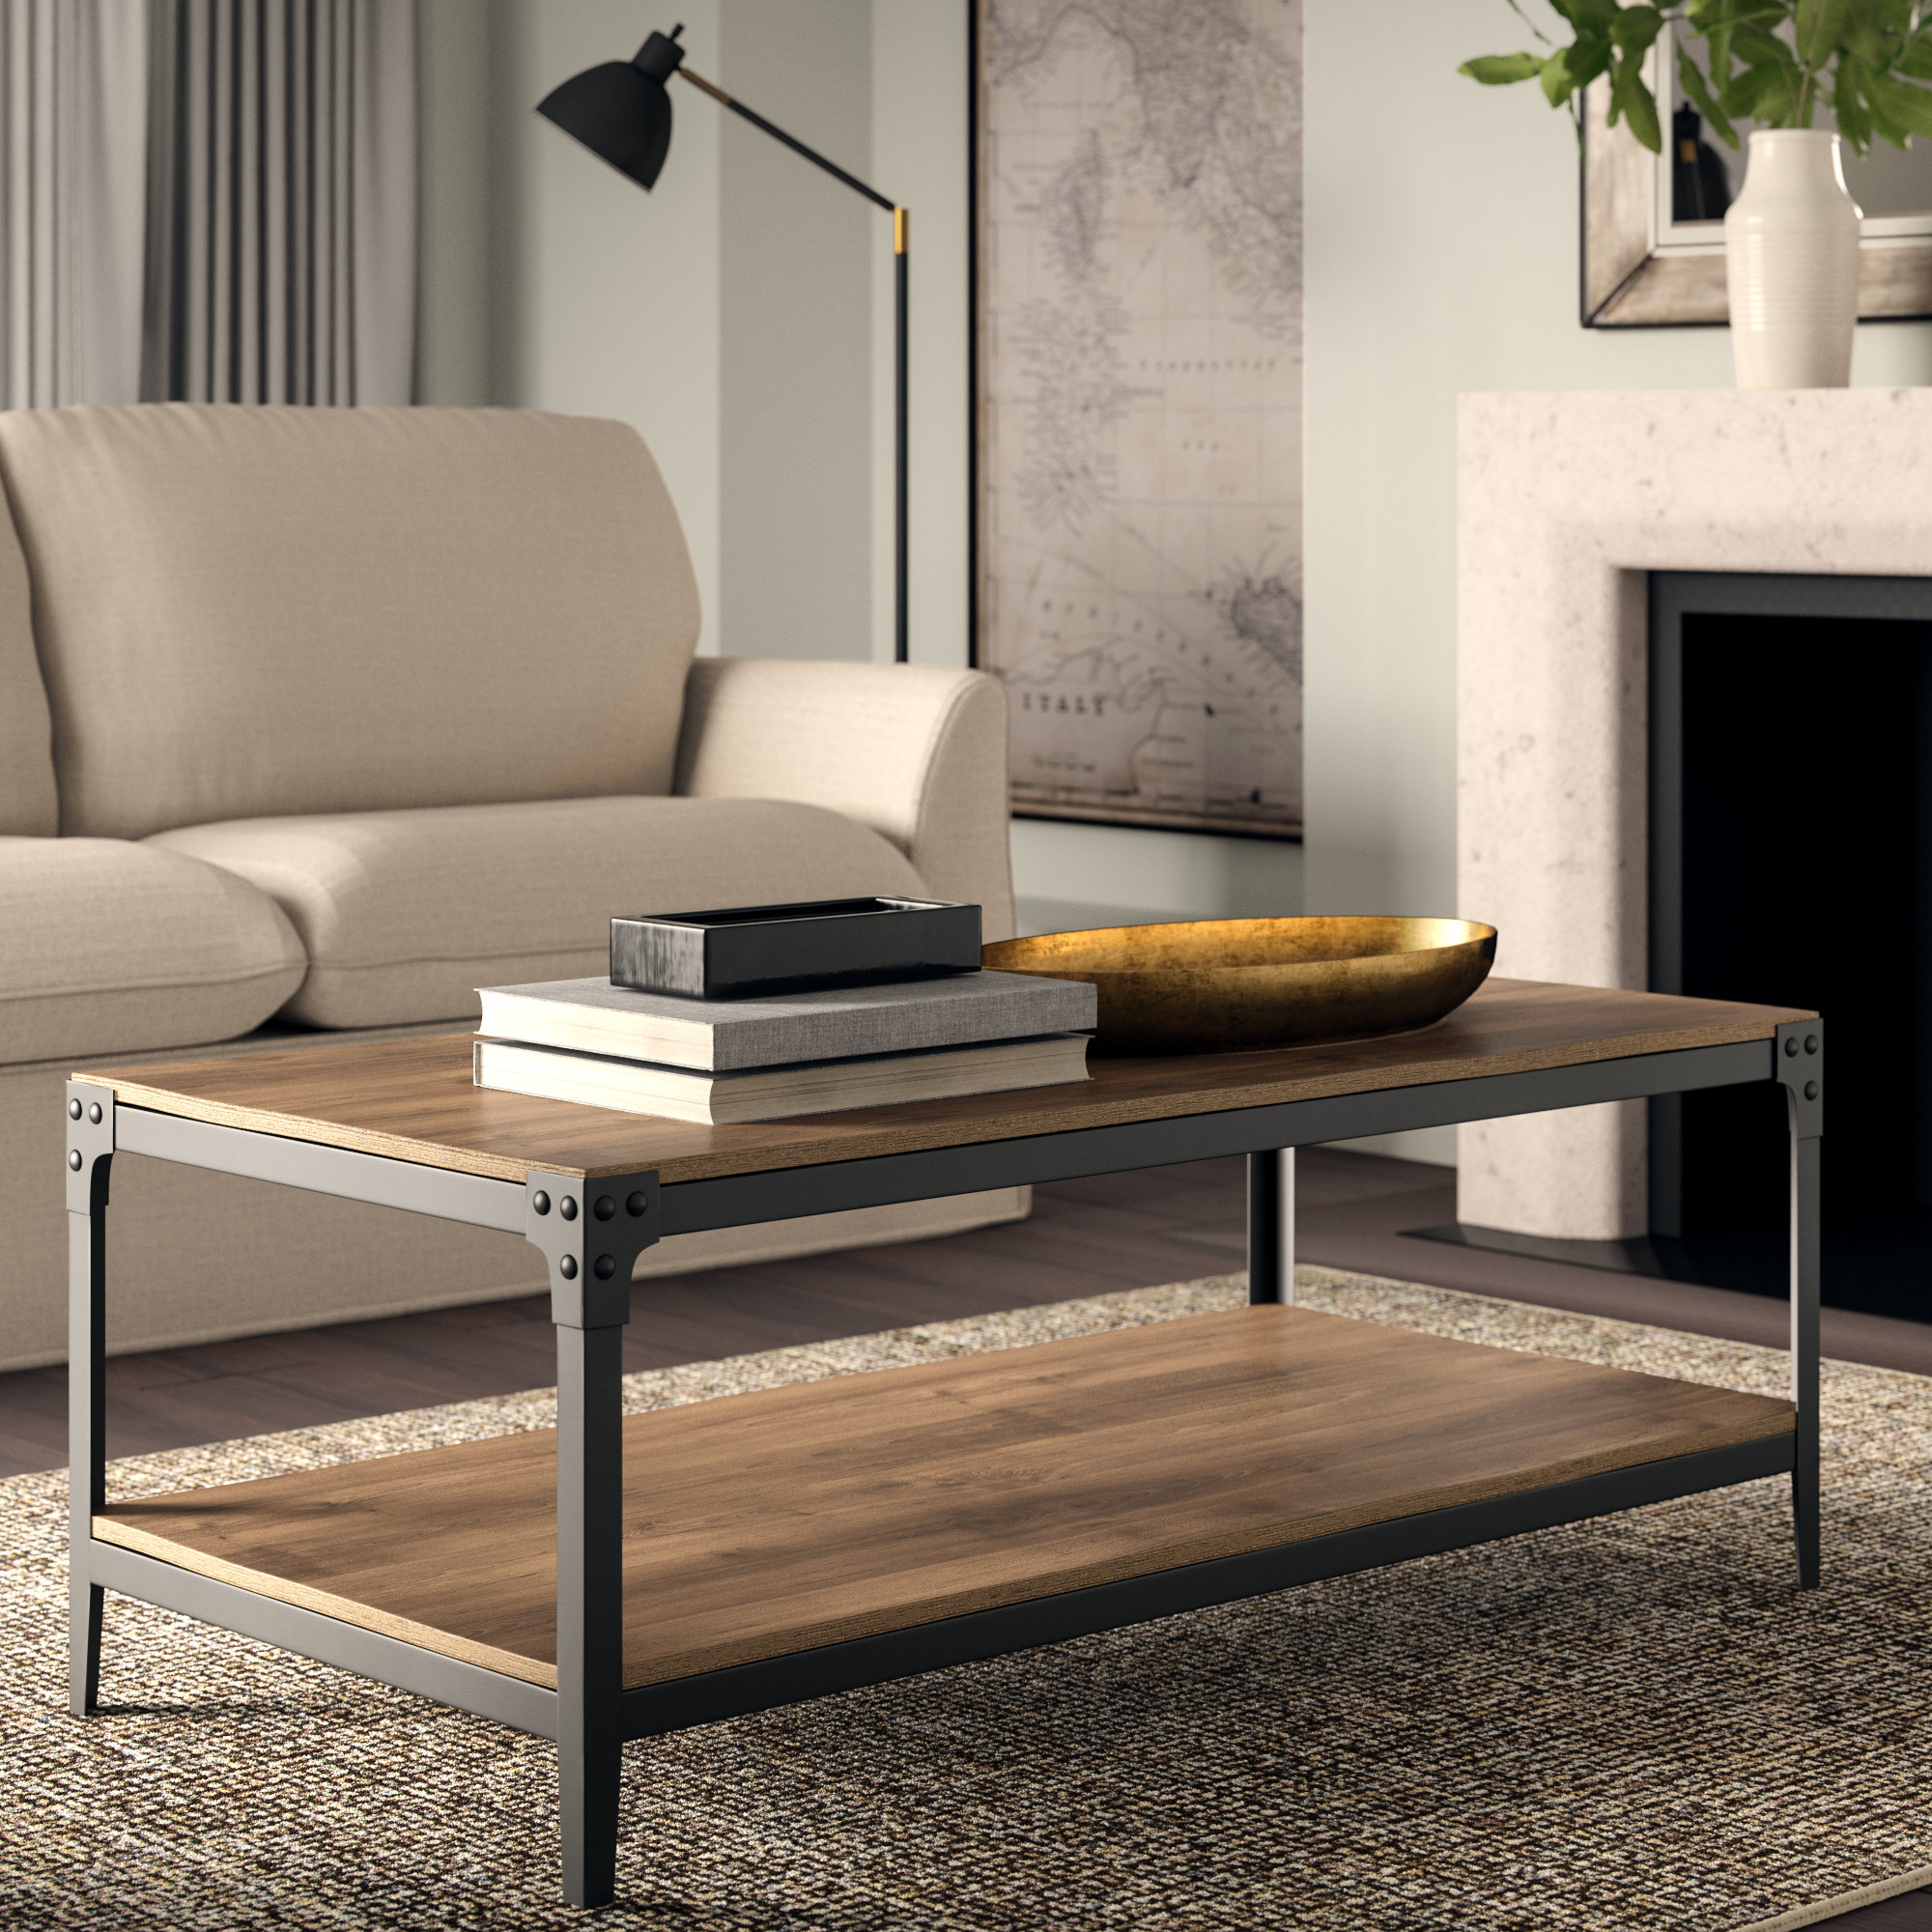 Wayfair Greyleigh Cainsville 3 Piece Coffee Table Set in measurements 2000 X 2000